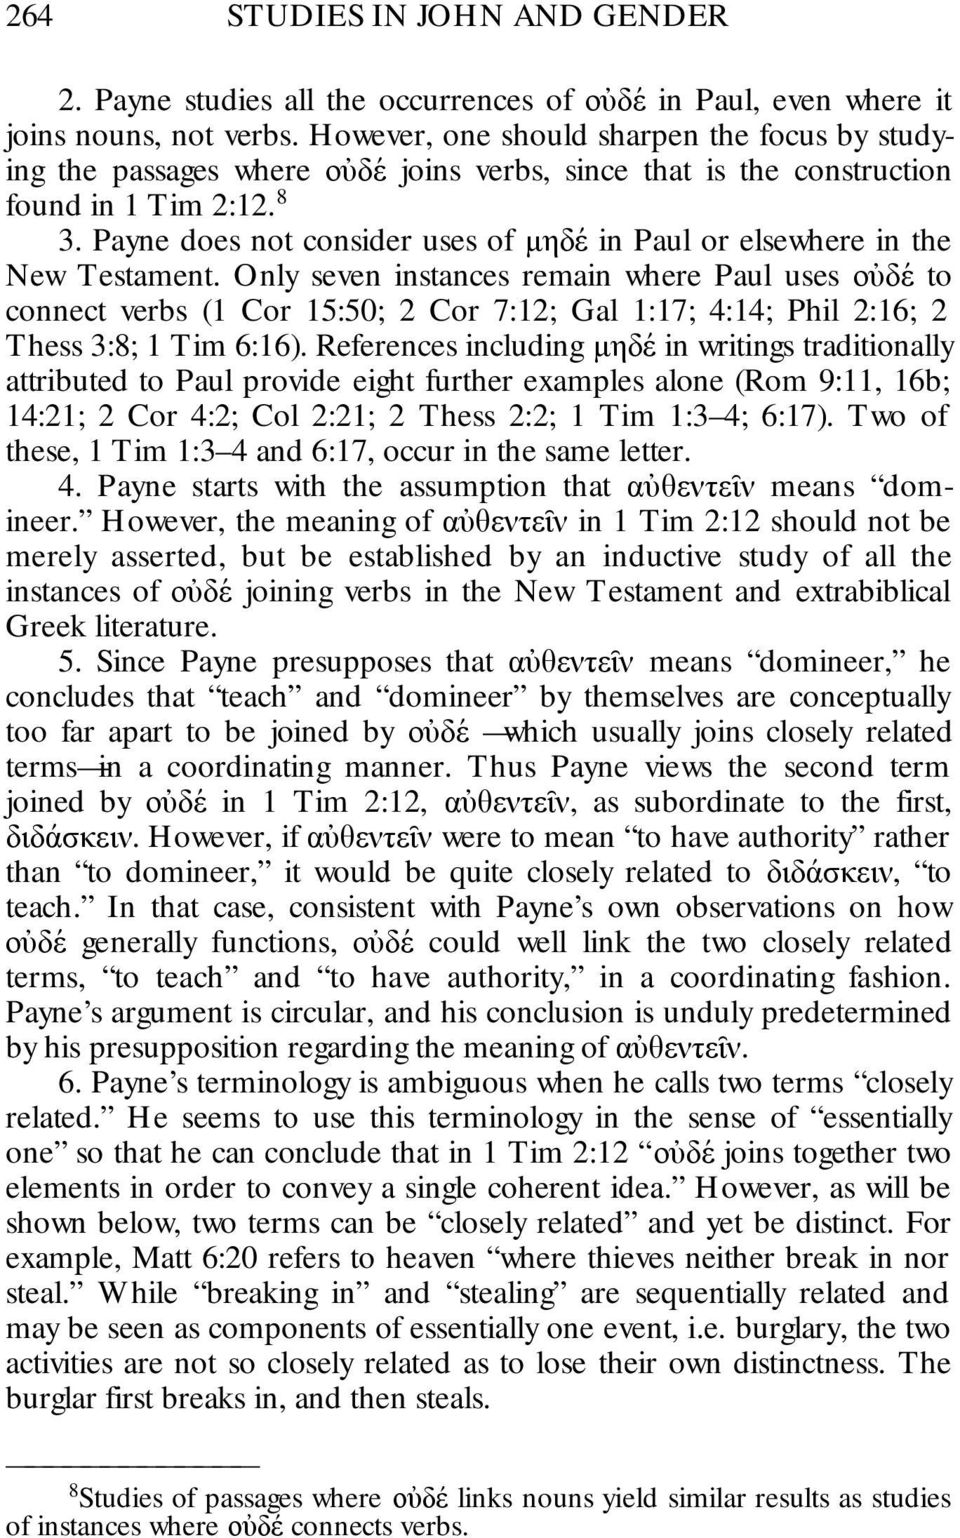 Payne does not consider uses of μηδε in Paul or elsewhere in the New Testament.